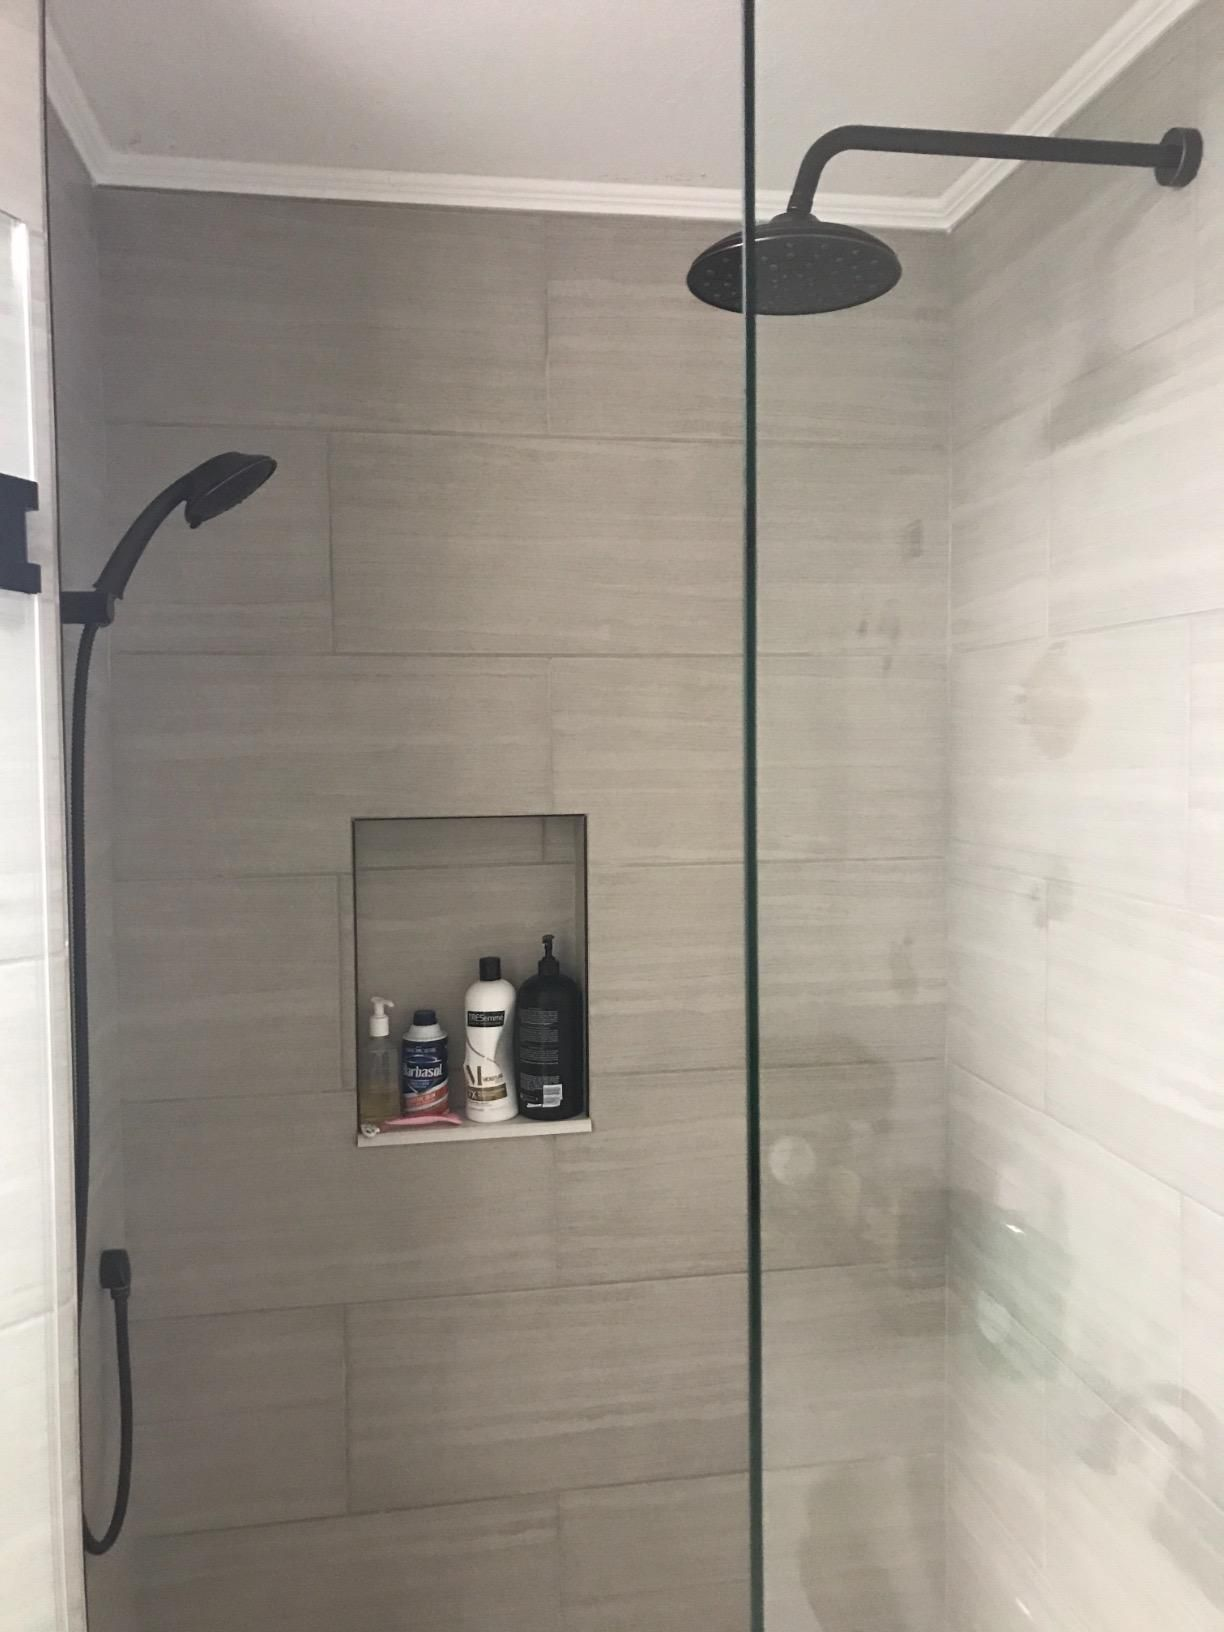 Shower System Wall Mounted Shower Faucet Set For Bathroom With High Pressure 8 Rain Shower Head And 3 Setting Shower Systems Shower Faucet Sets Shower Faucet